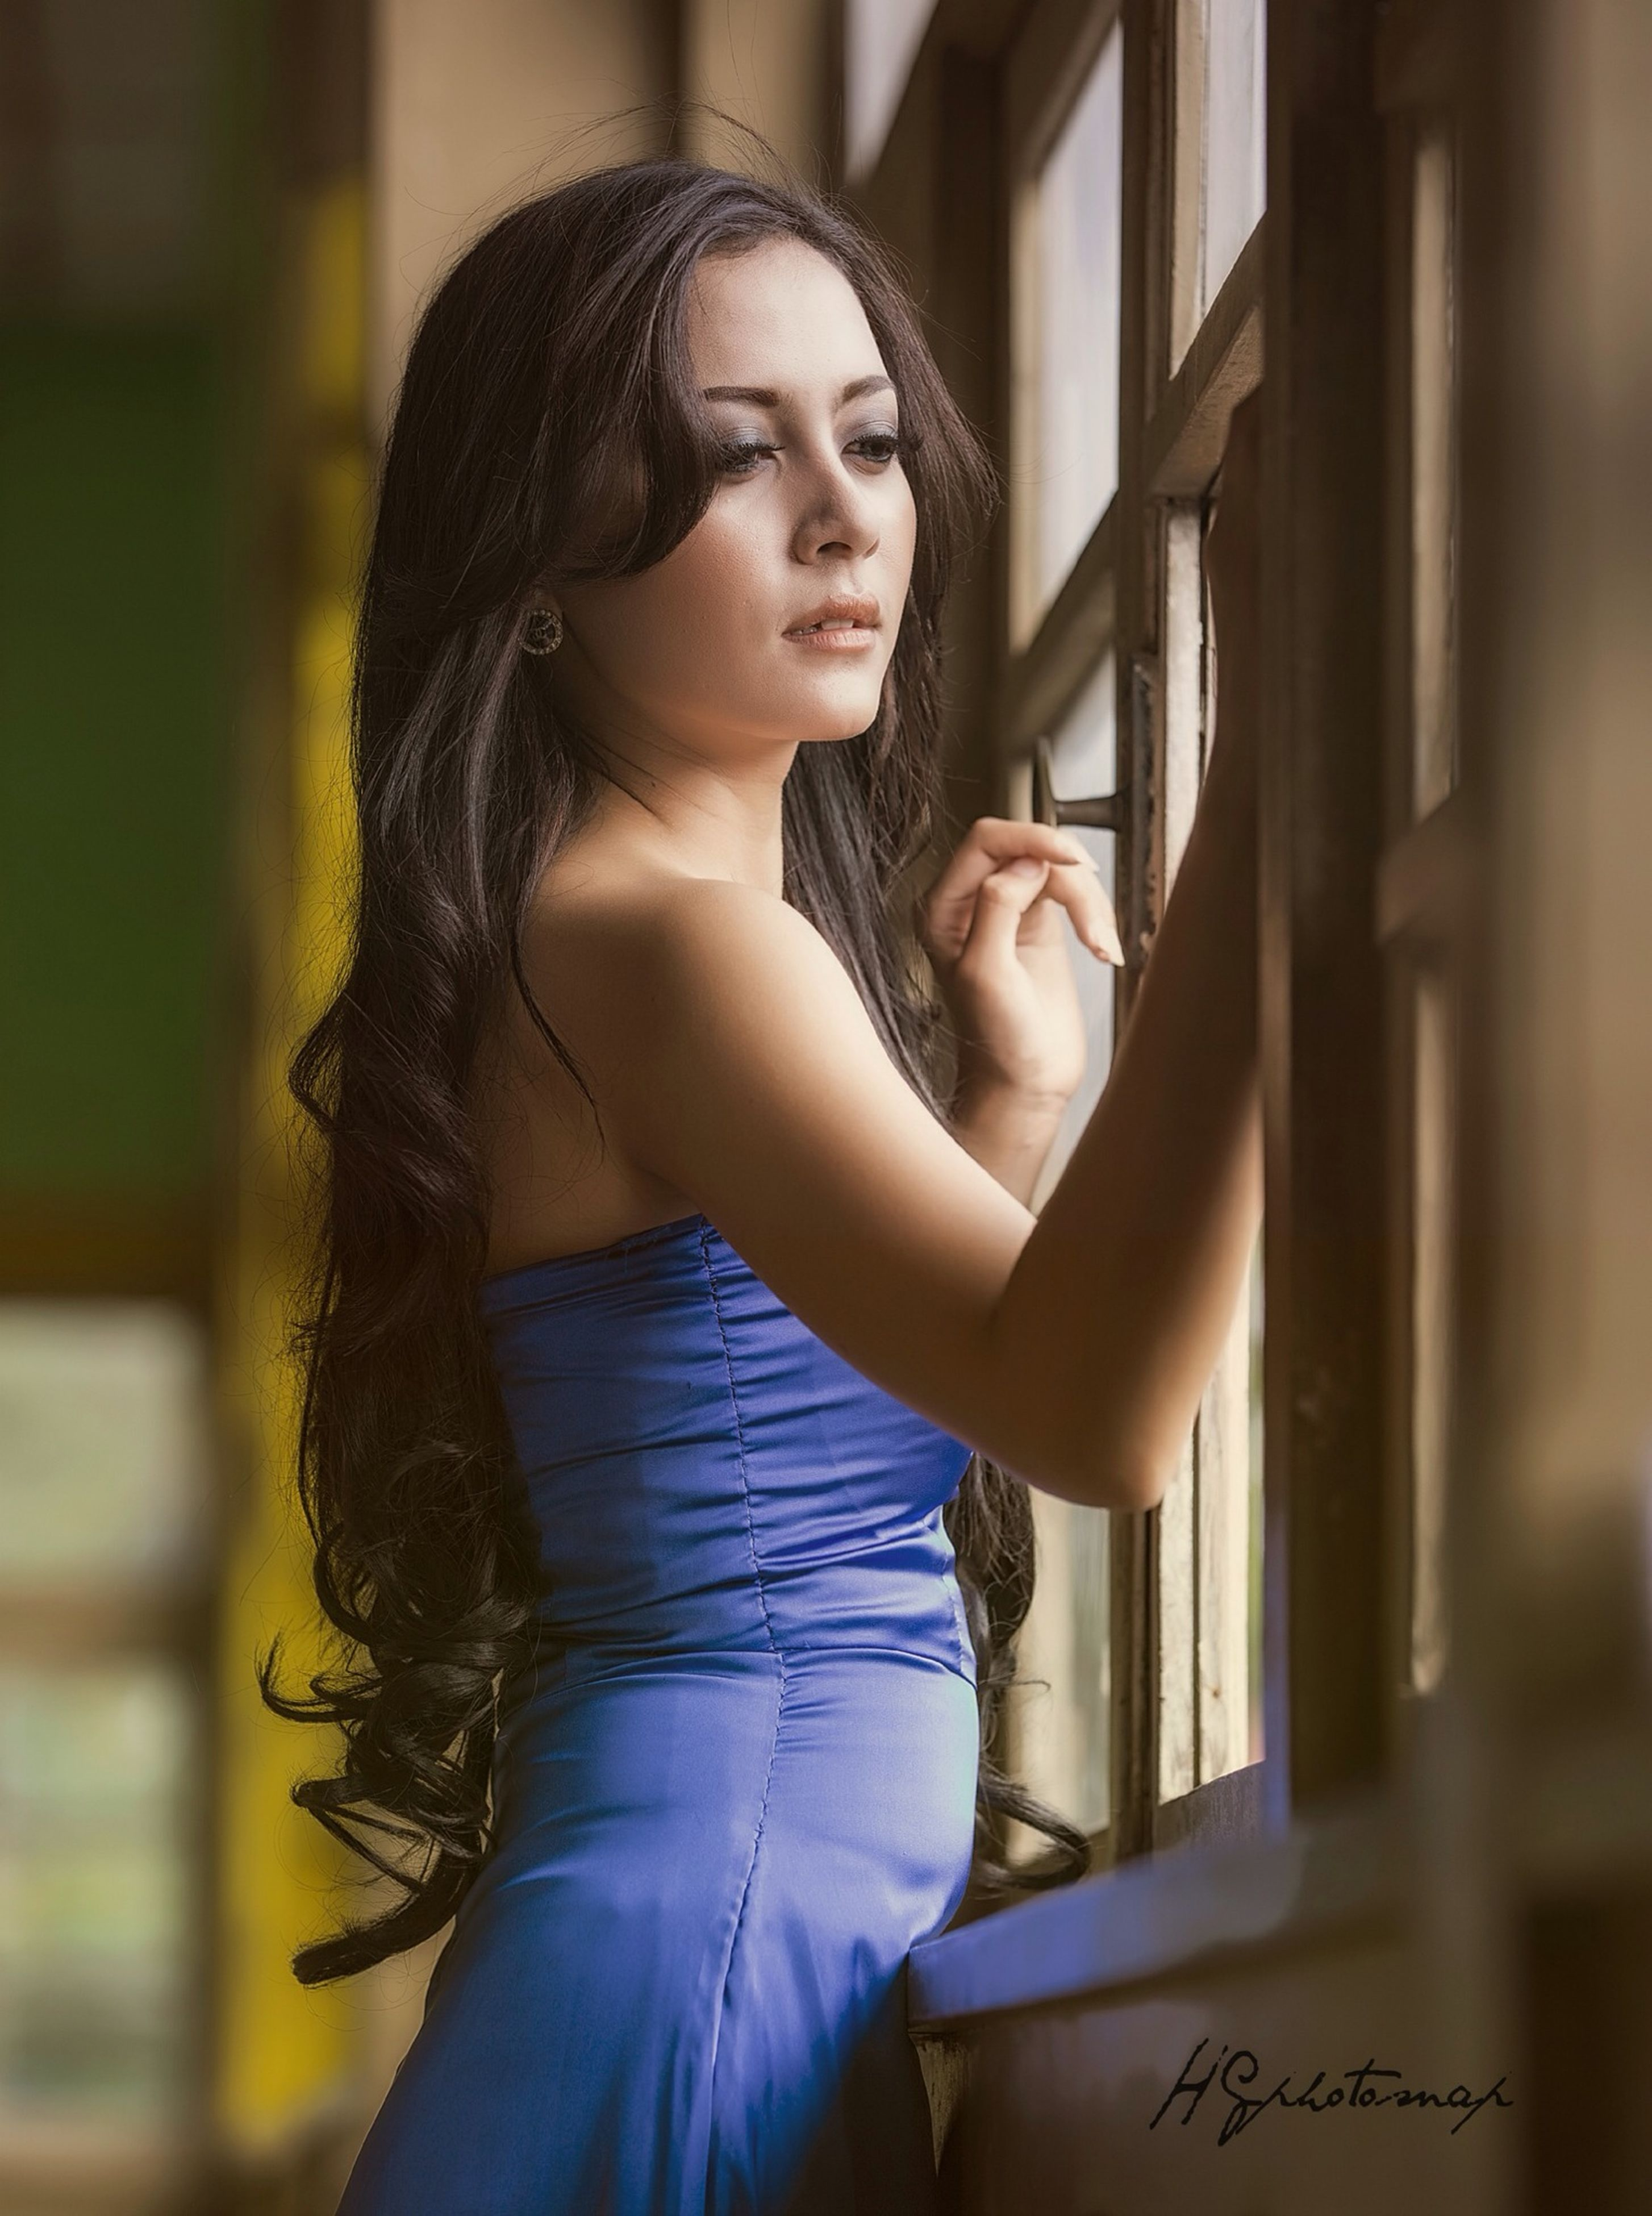 young adult, young women, person, lifestyles, front view, leisure activity, long hair, looking at camera, portrait, standing, three quarter length, indoors, casual clothing, beauty, fashion, waist up, smiling